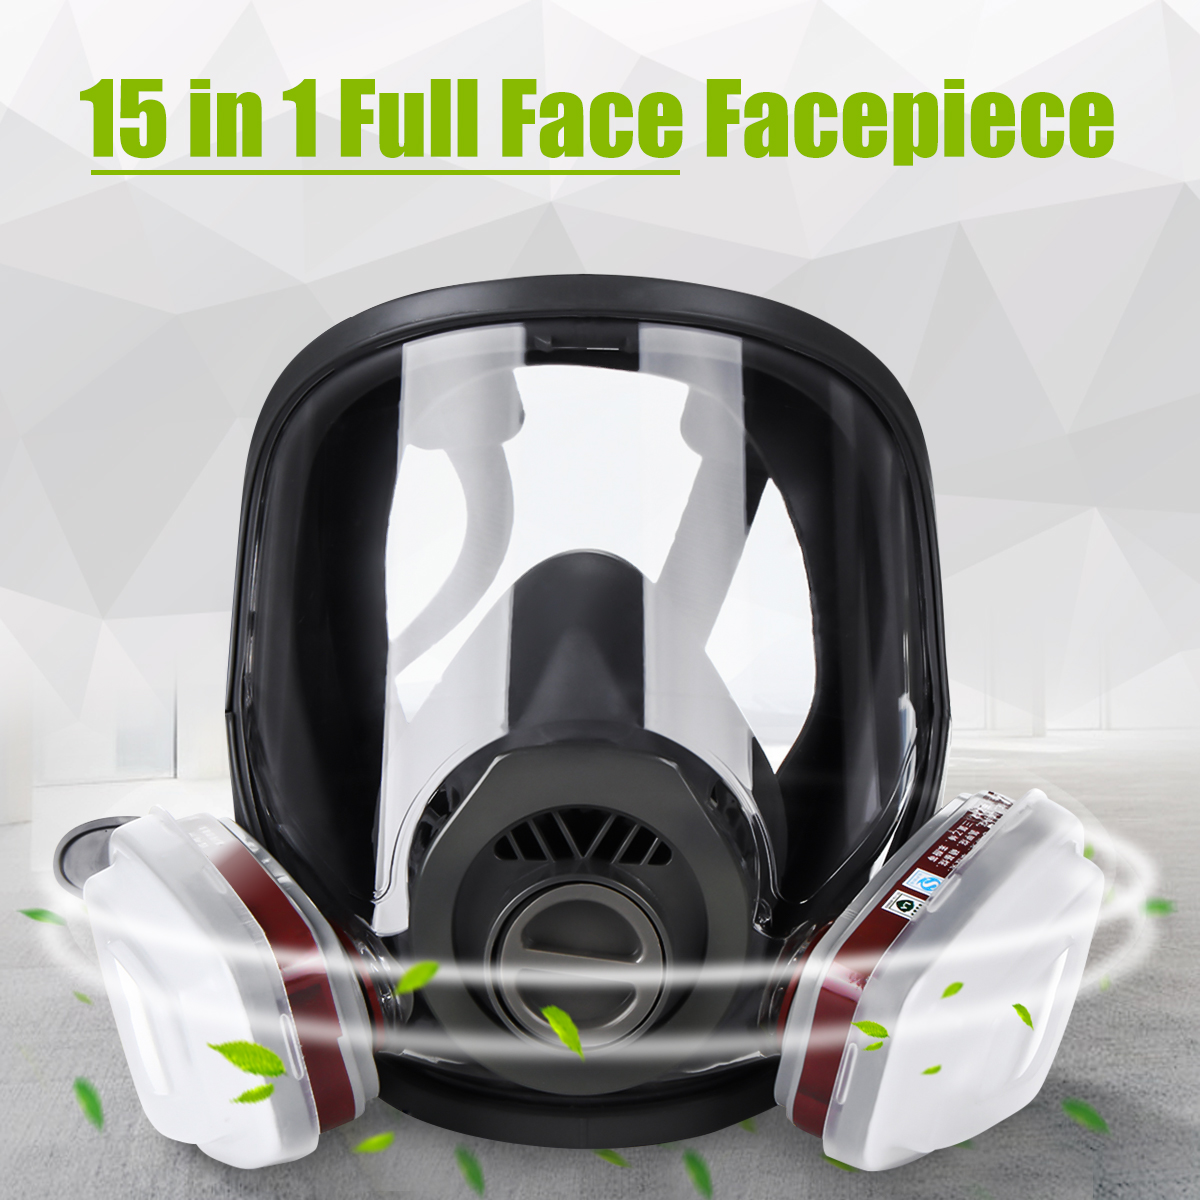 15 in 1 Full Face Gas Mask Facepiece Respirator Painting Spraying Mask 6800 Dust 13